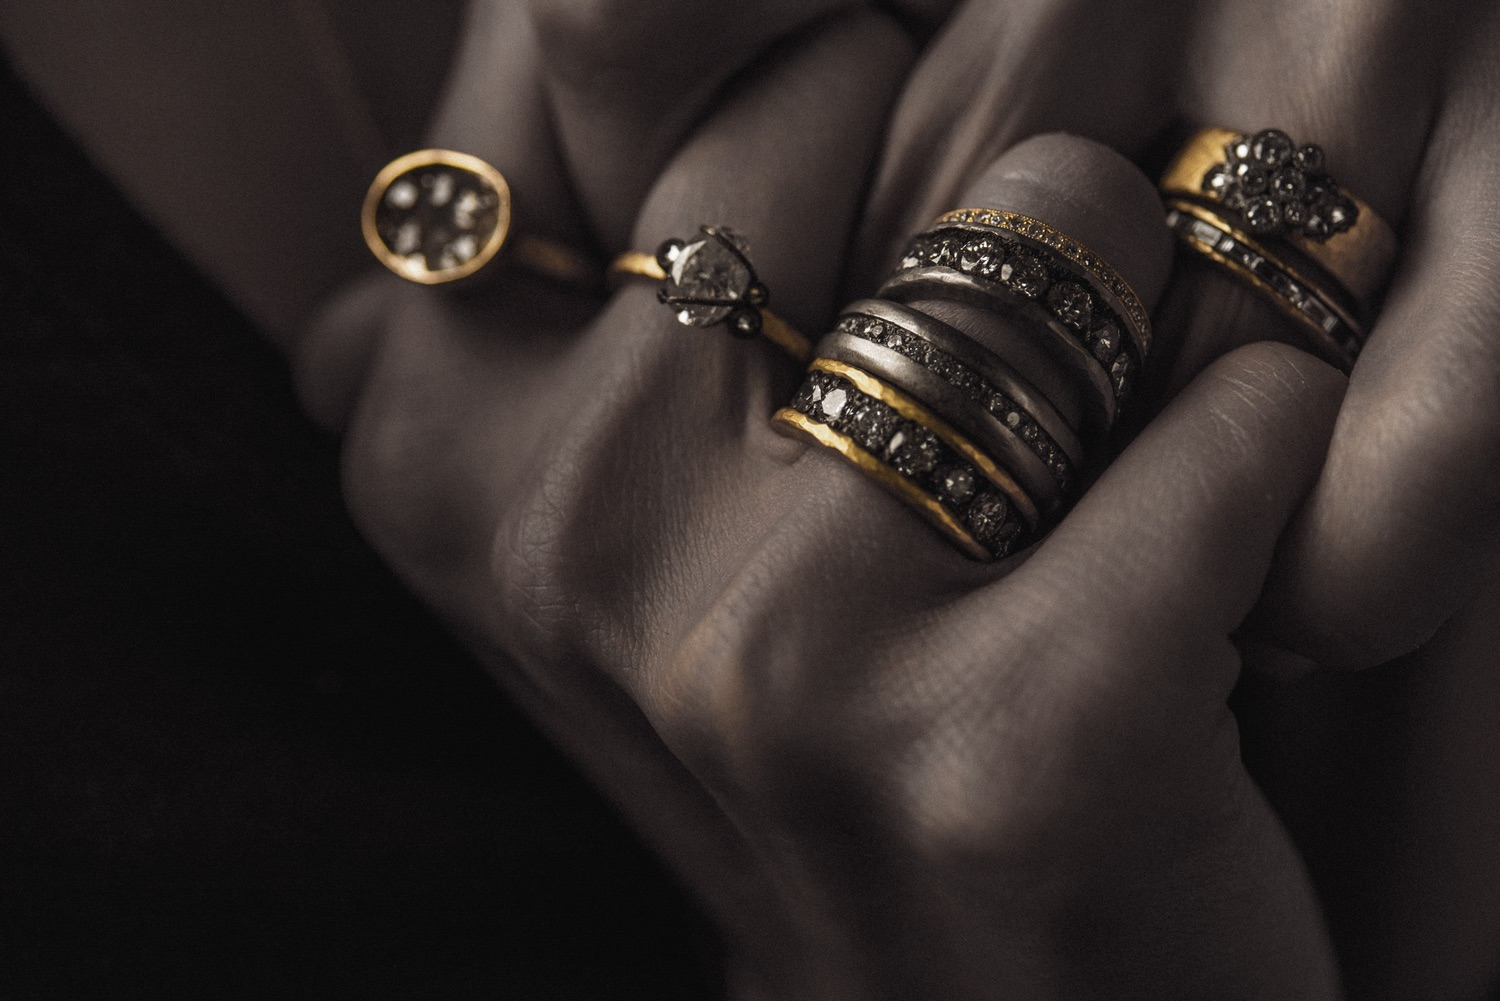 The Jewel - Todd Pownell Tap - Lookbook - Model Wearing Rings Close Up